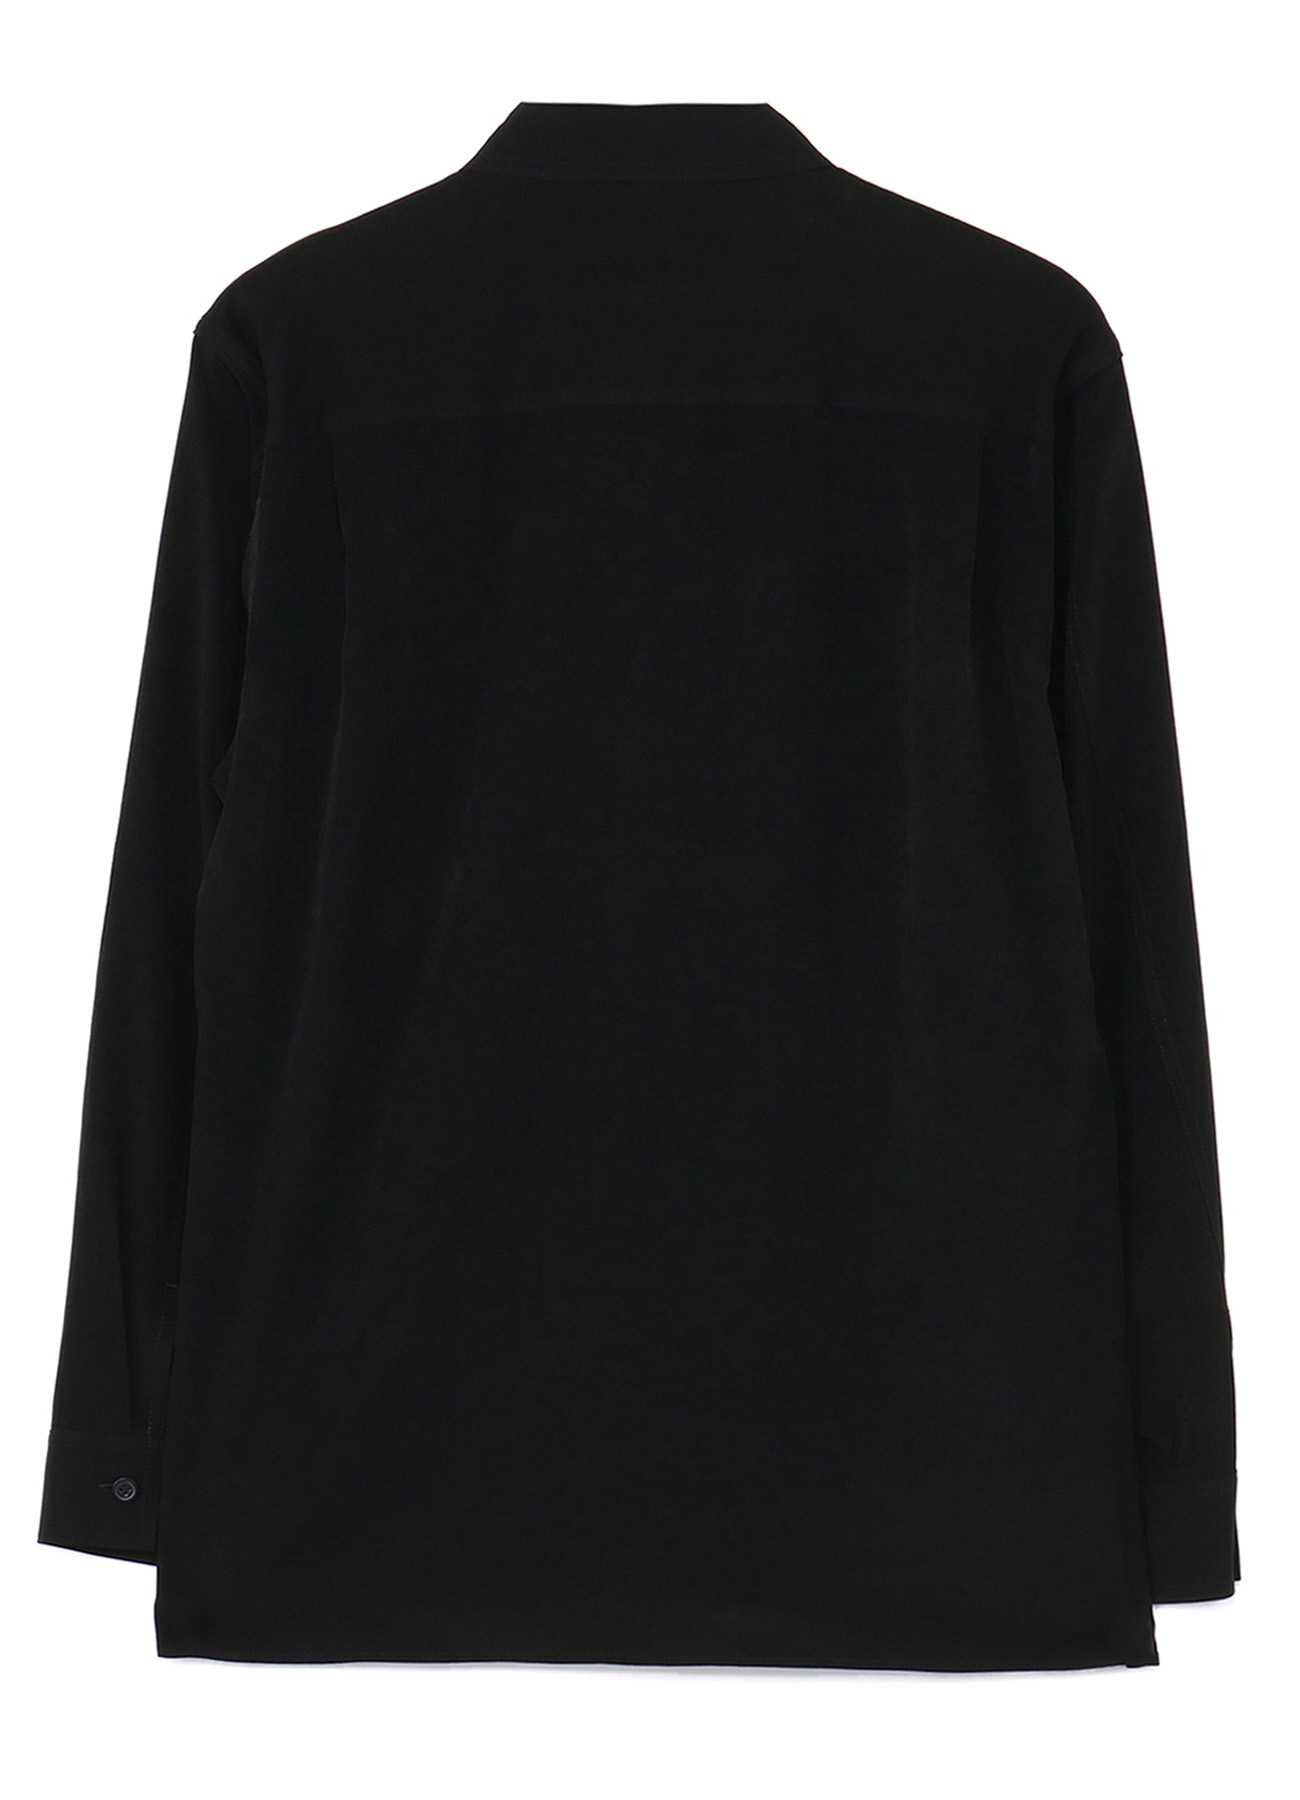 T/A Vintage Decyne Combination Switching Shirt